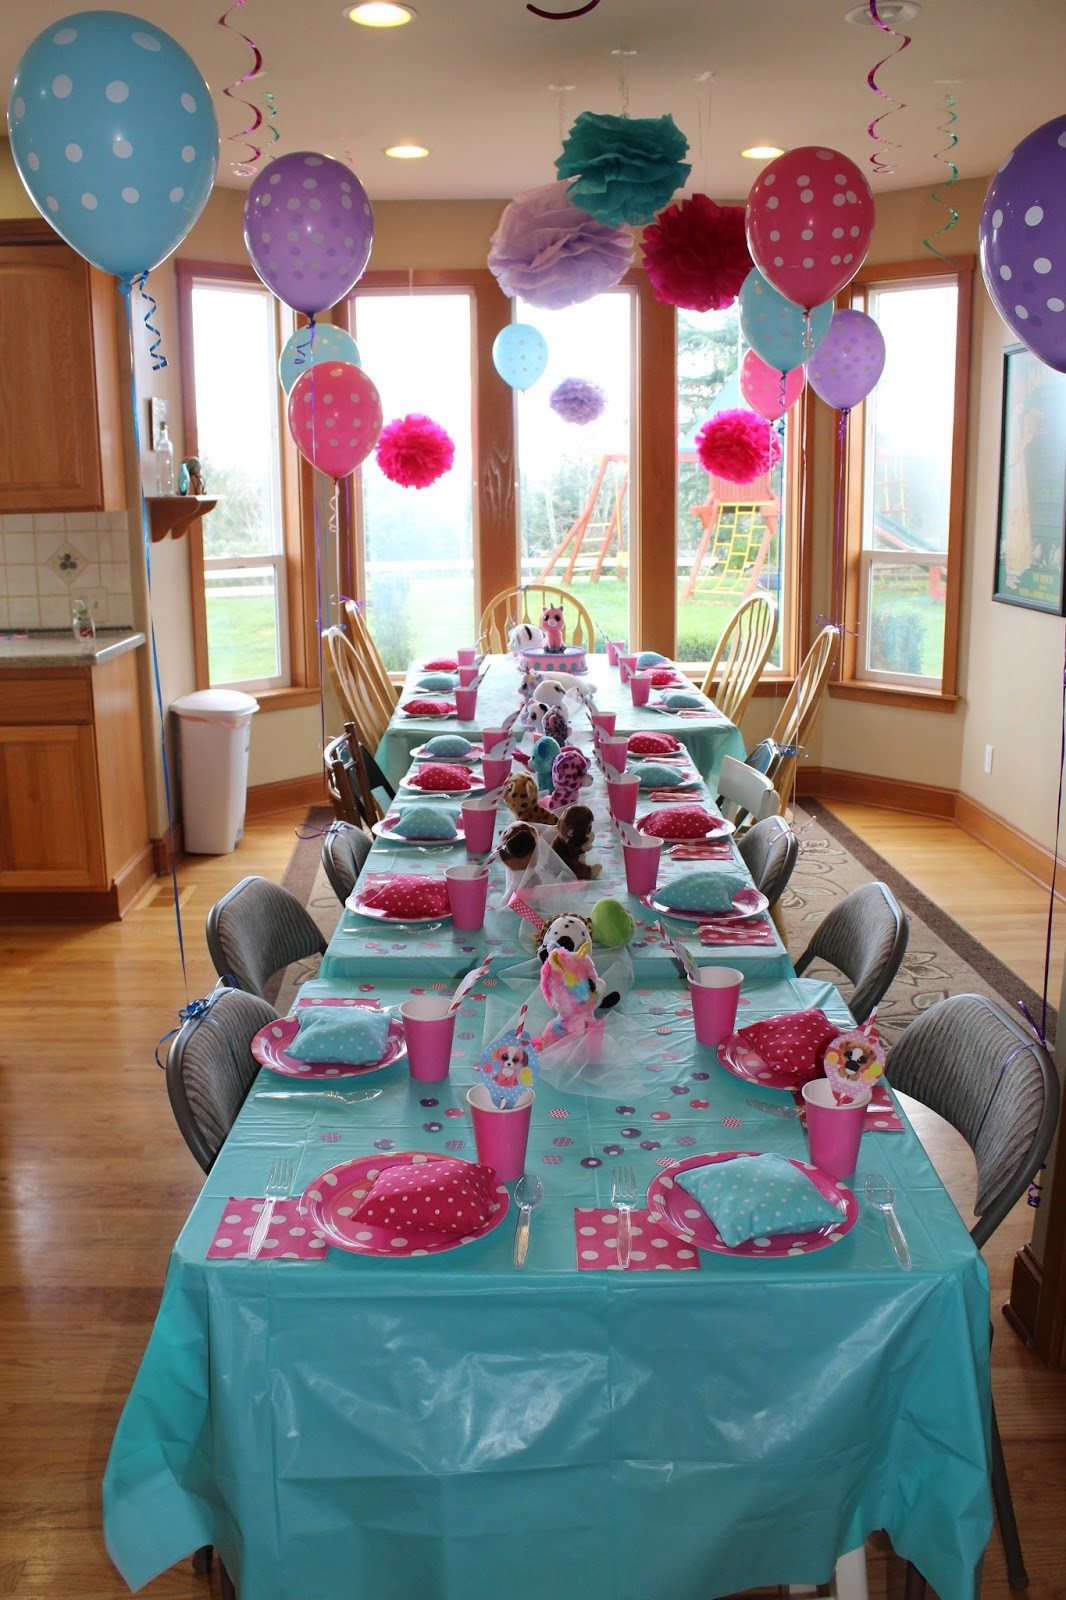 Best ideas about The Birthday Party . Save or Pin In The Hartland Lia s Beanie Boo Birthday Party Now.